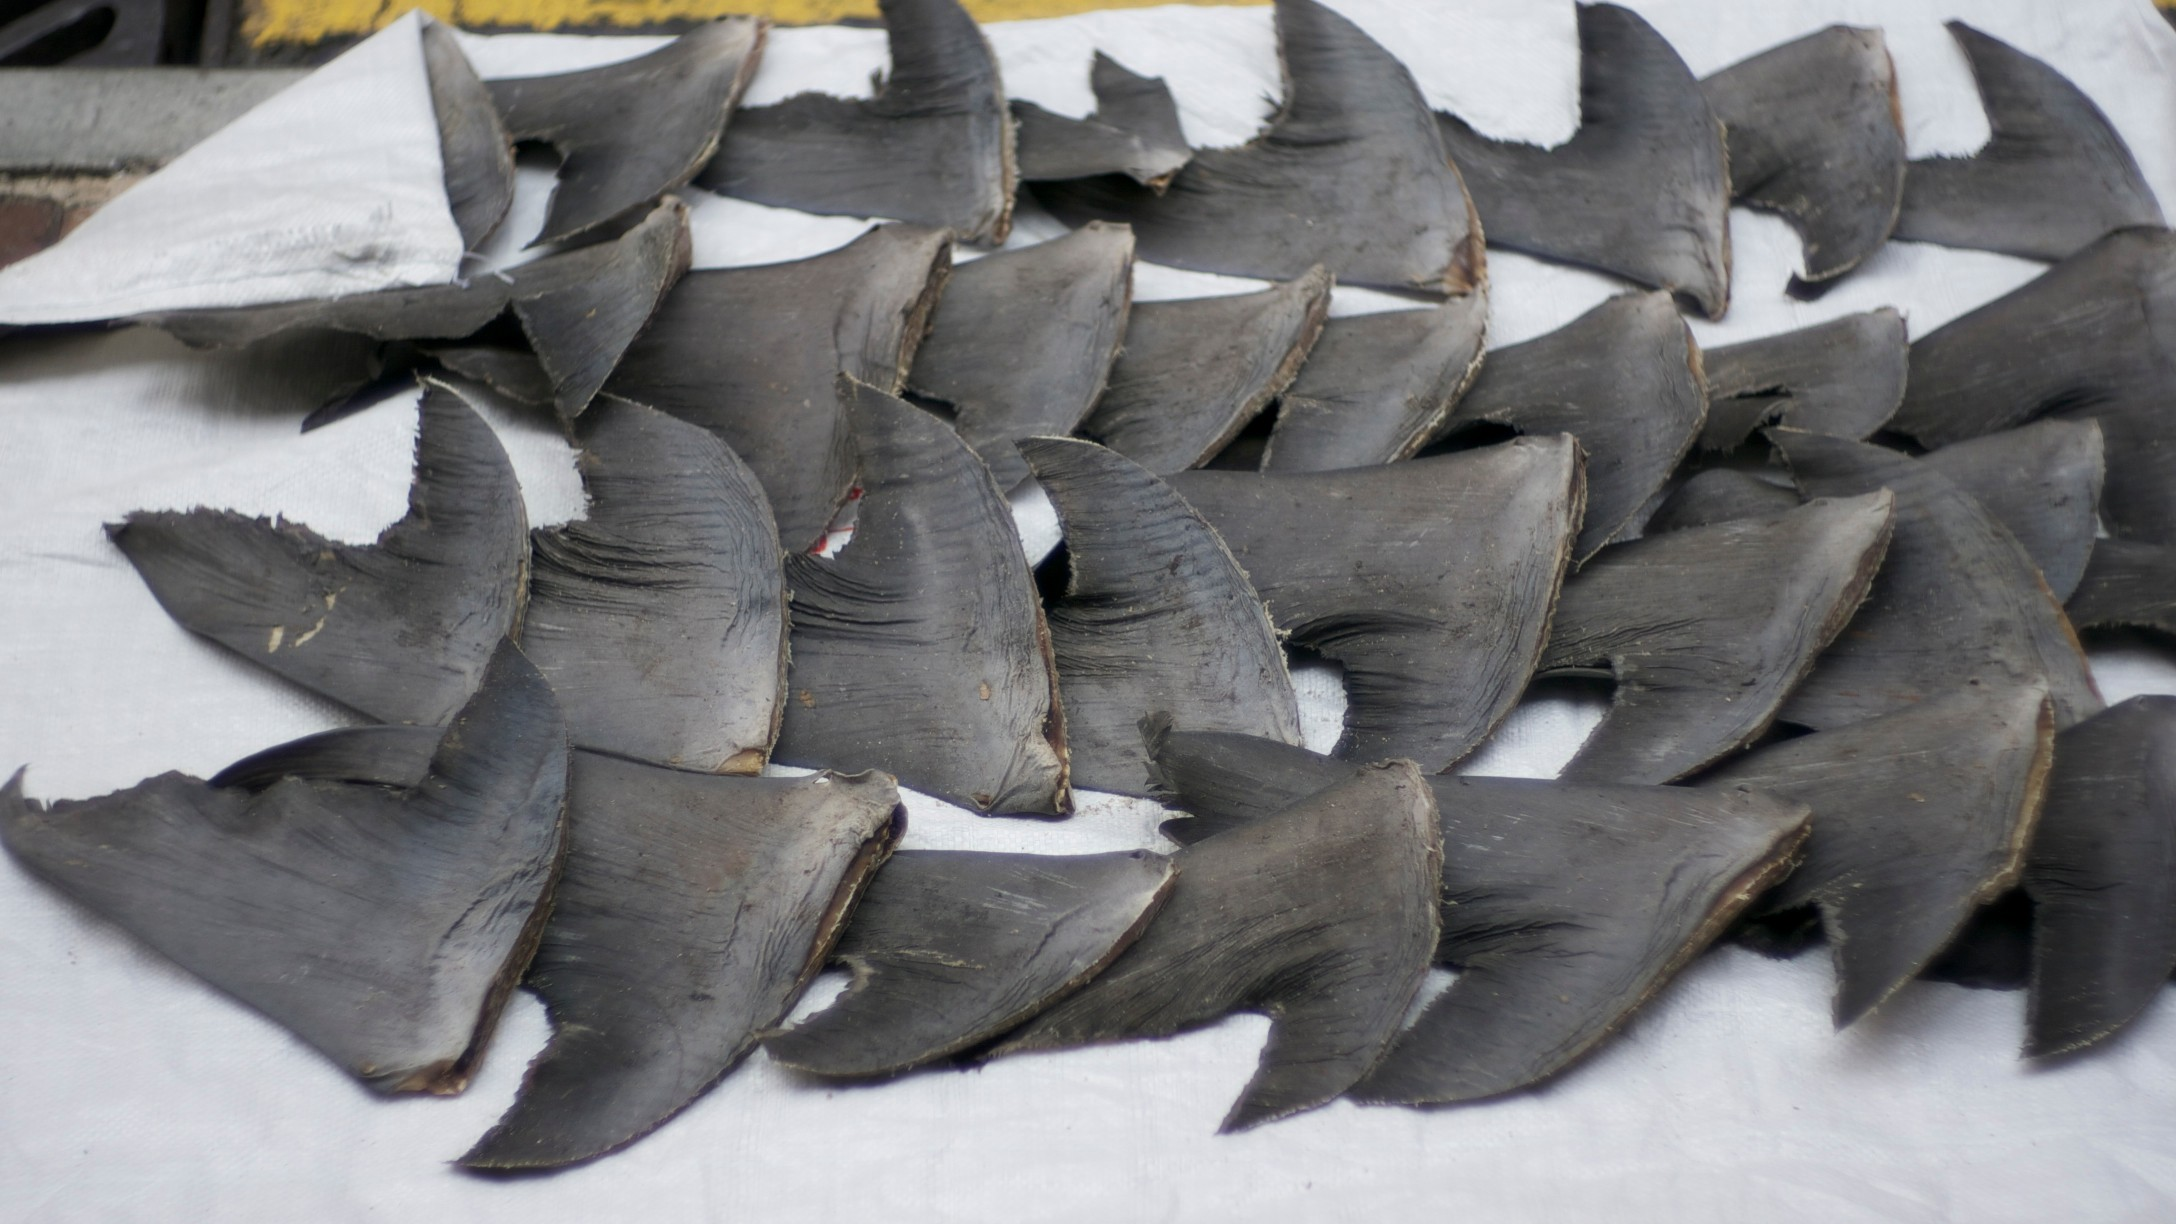 There Is One Company that Could Put a Big Dent in the Shark Fin Trade Overnight